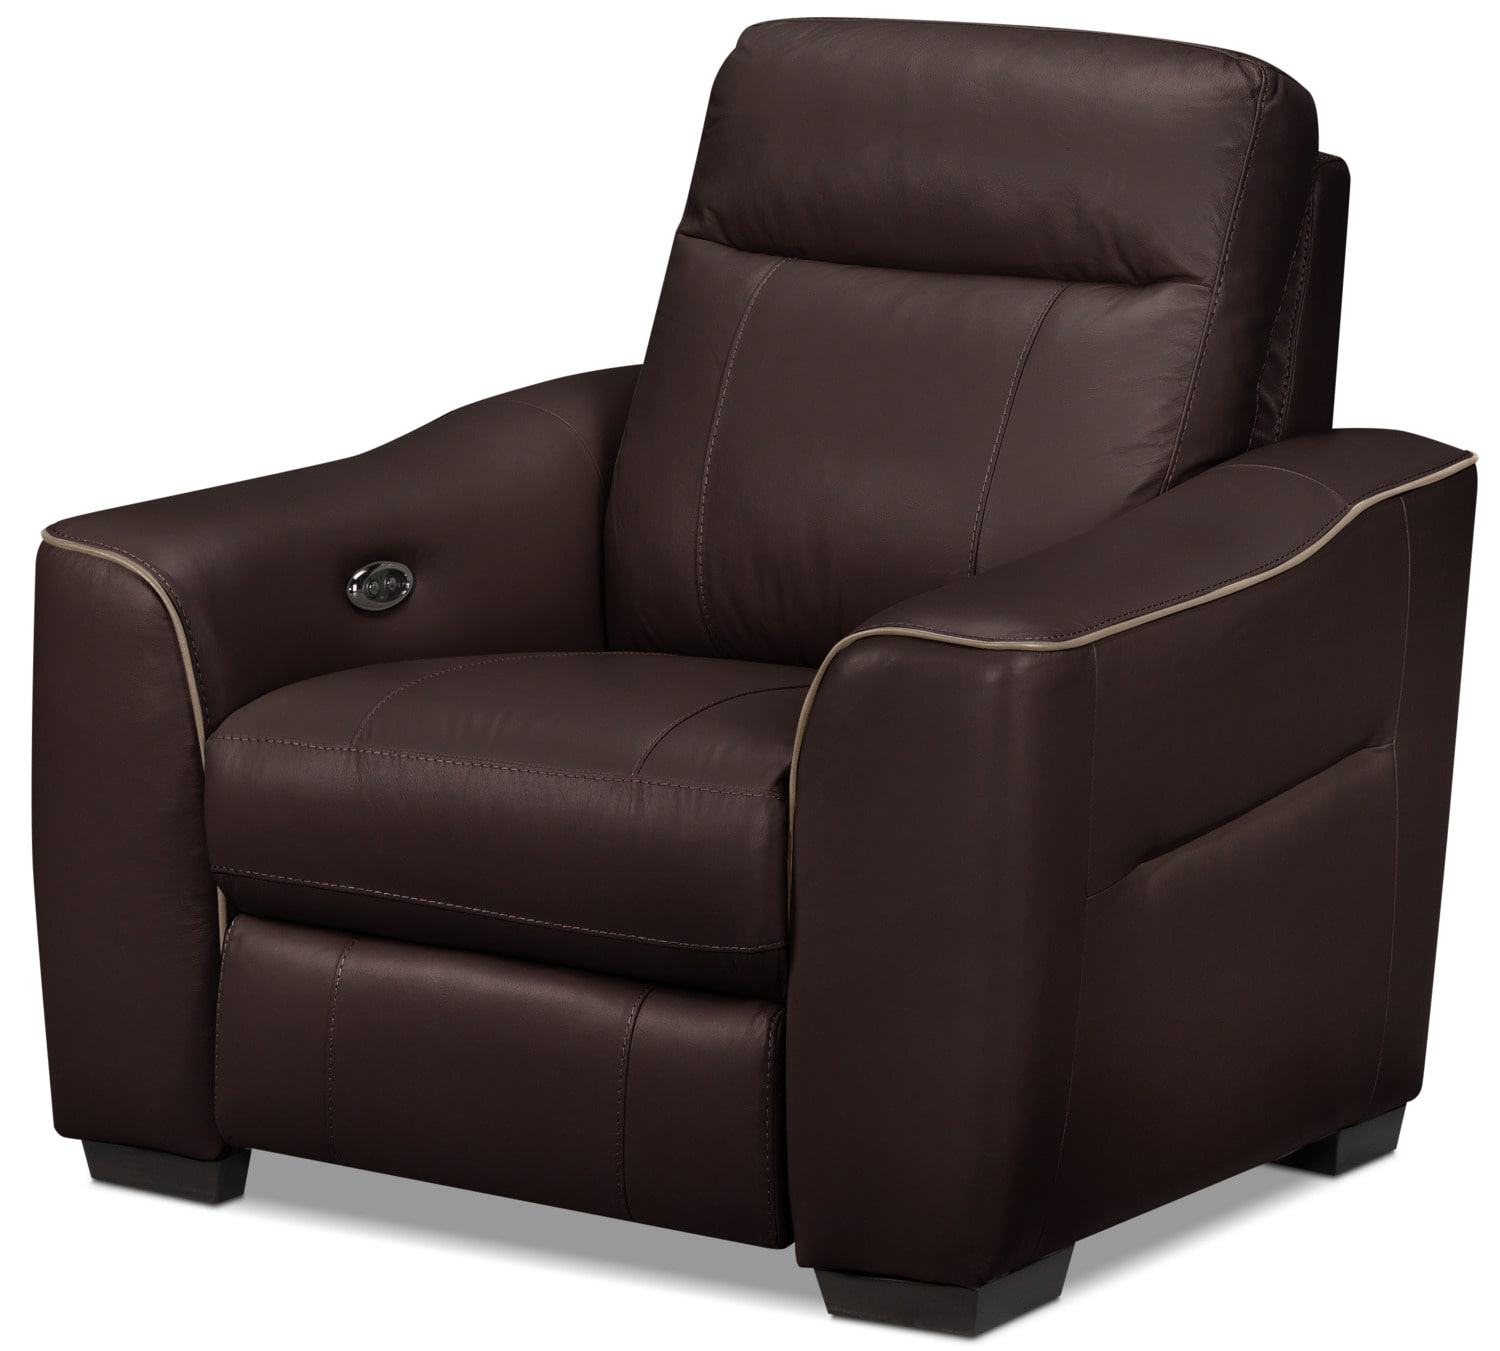 Bolton Power Recliner - Dark Brown